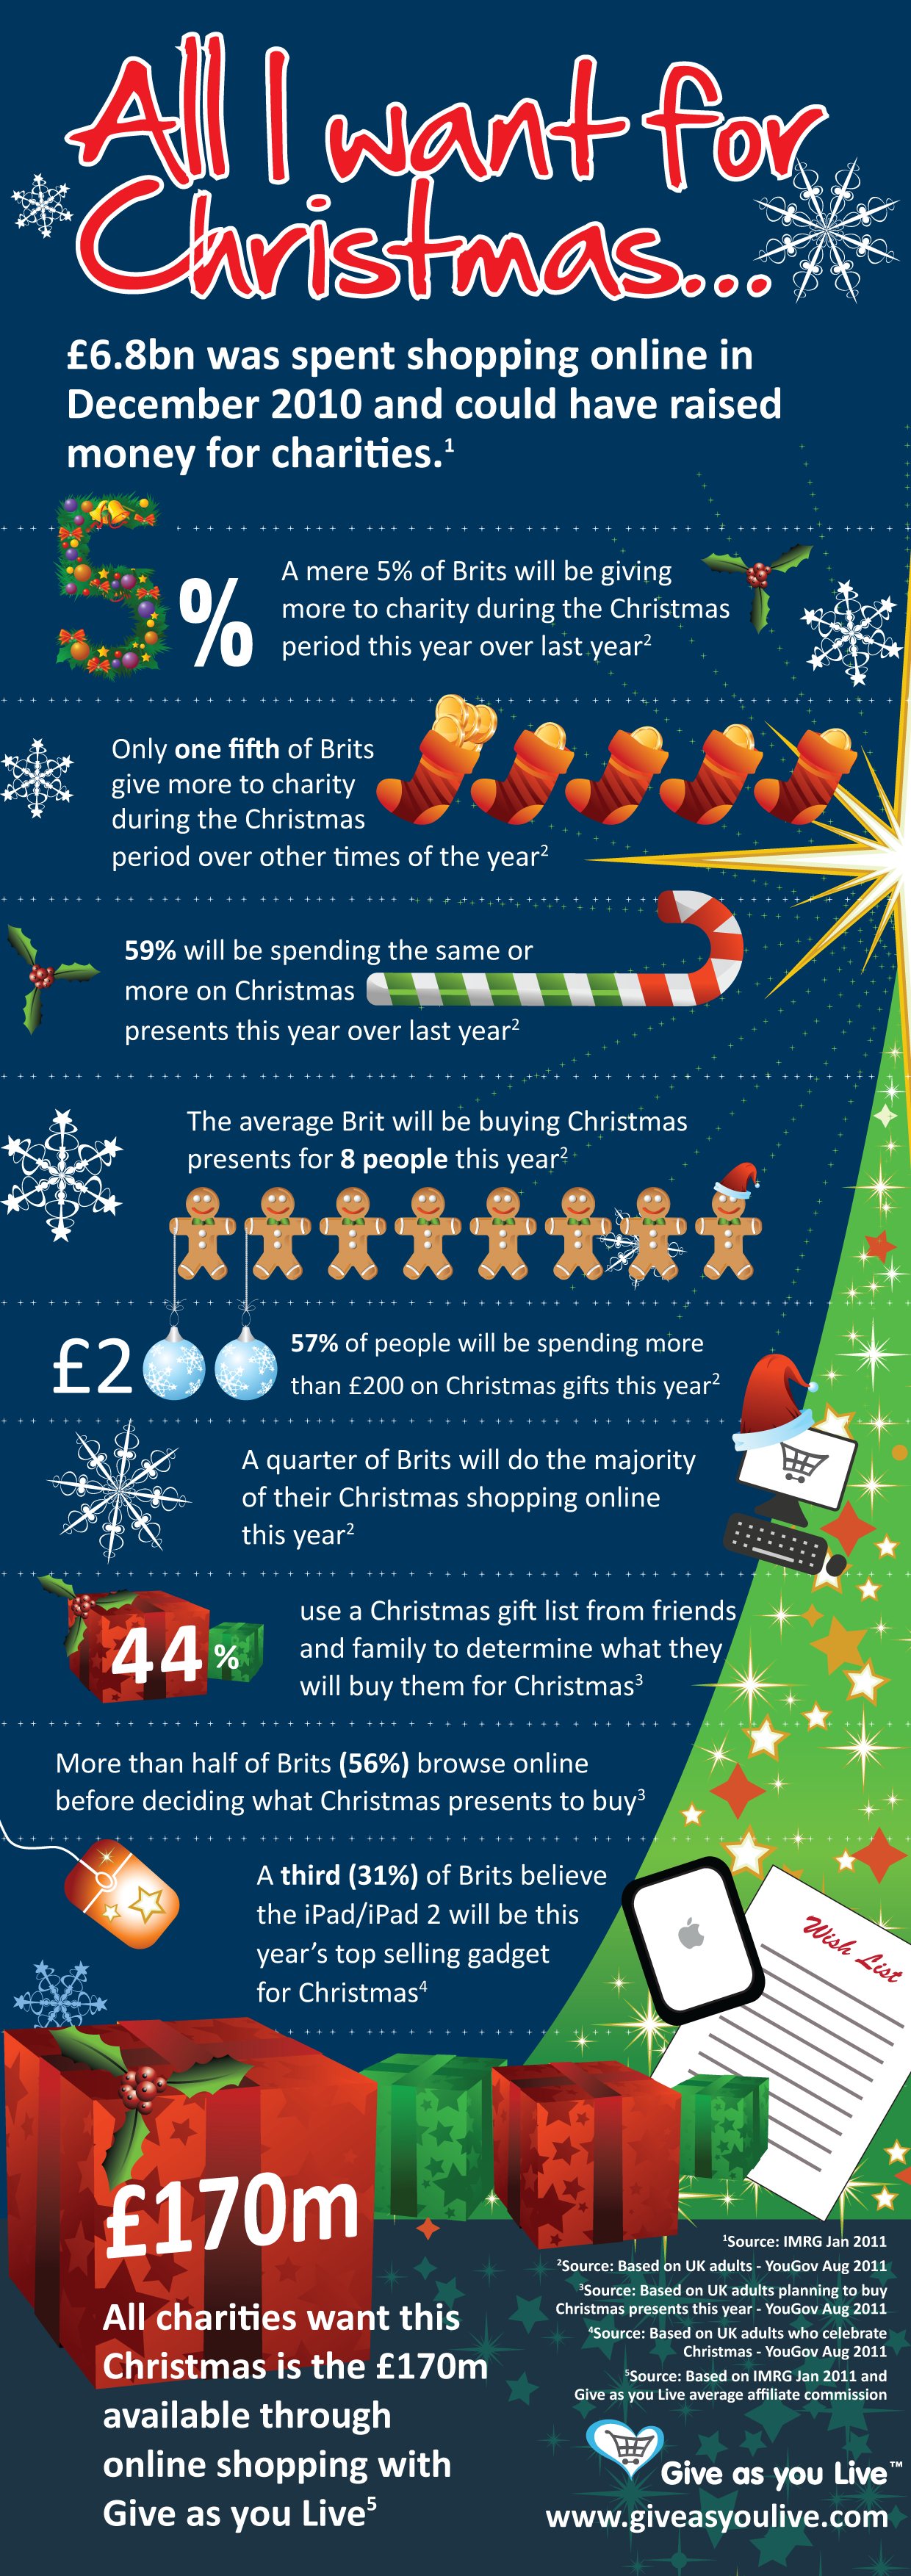 Digital fundraising at Christmas - Give As You Live